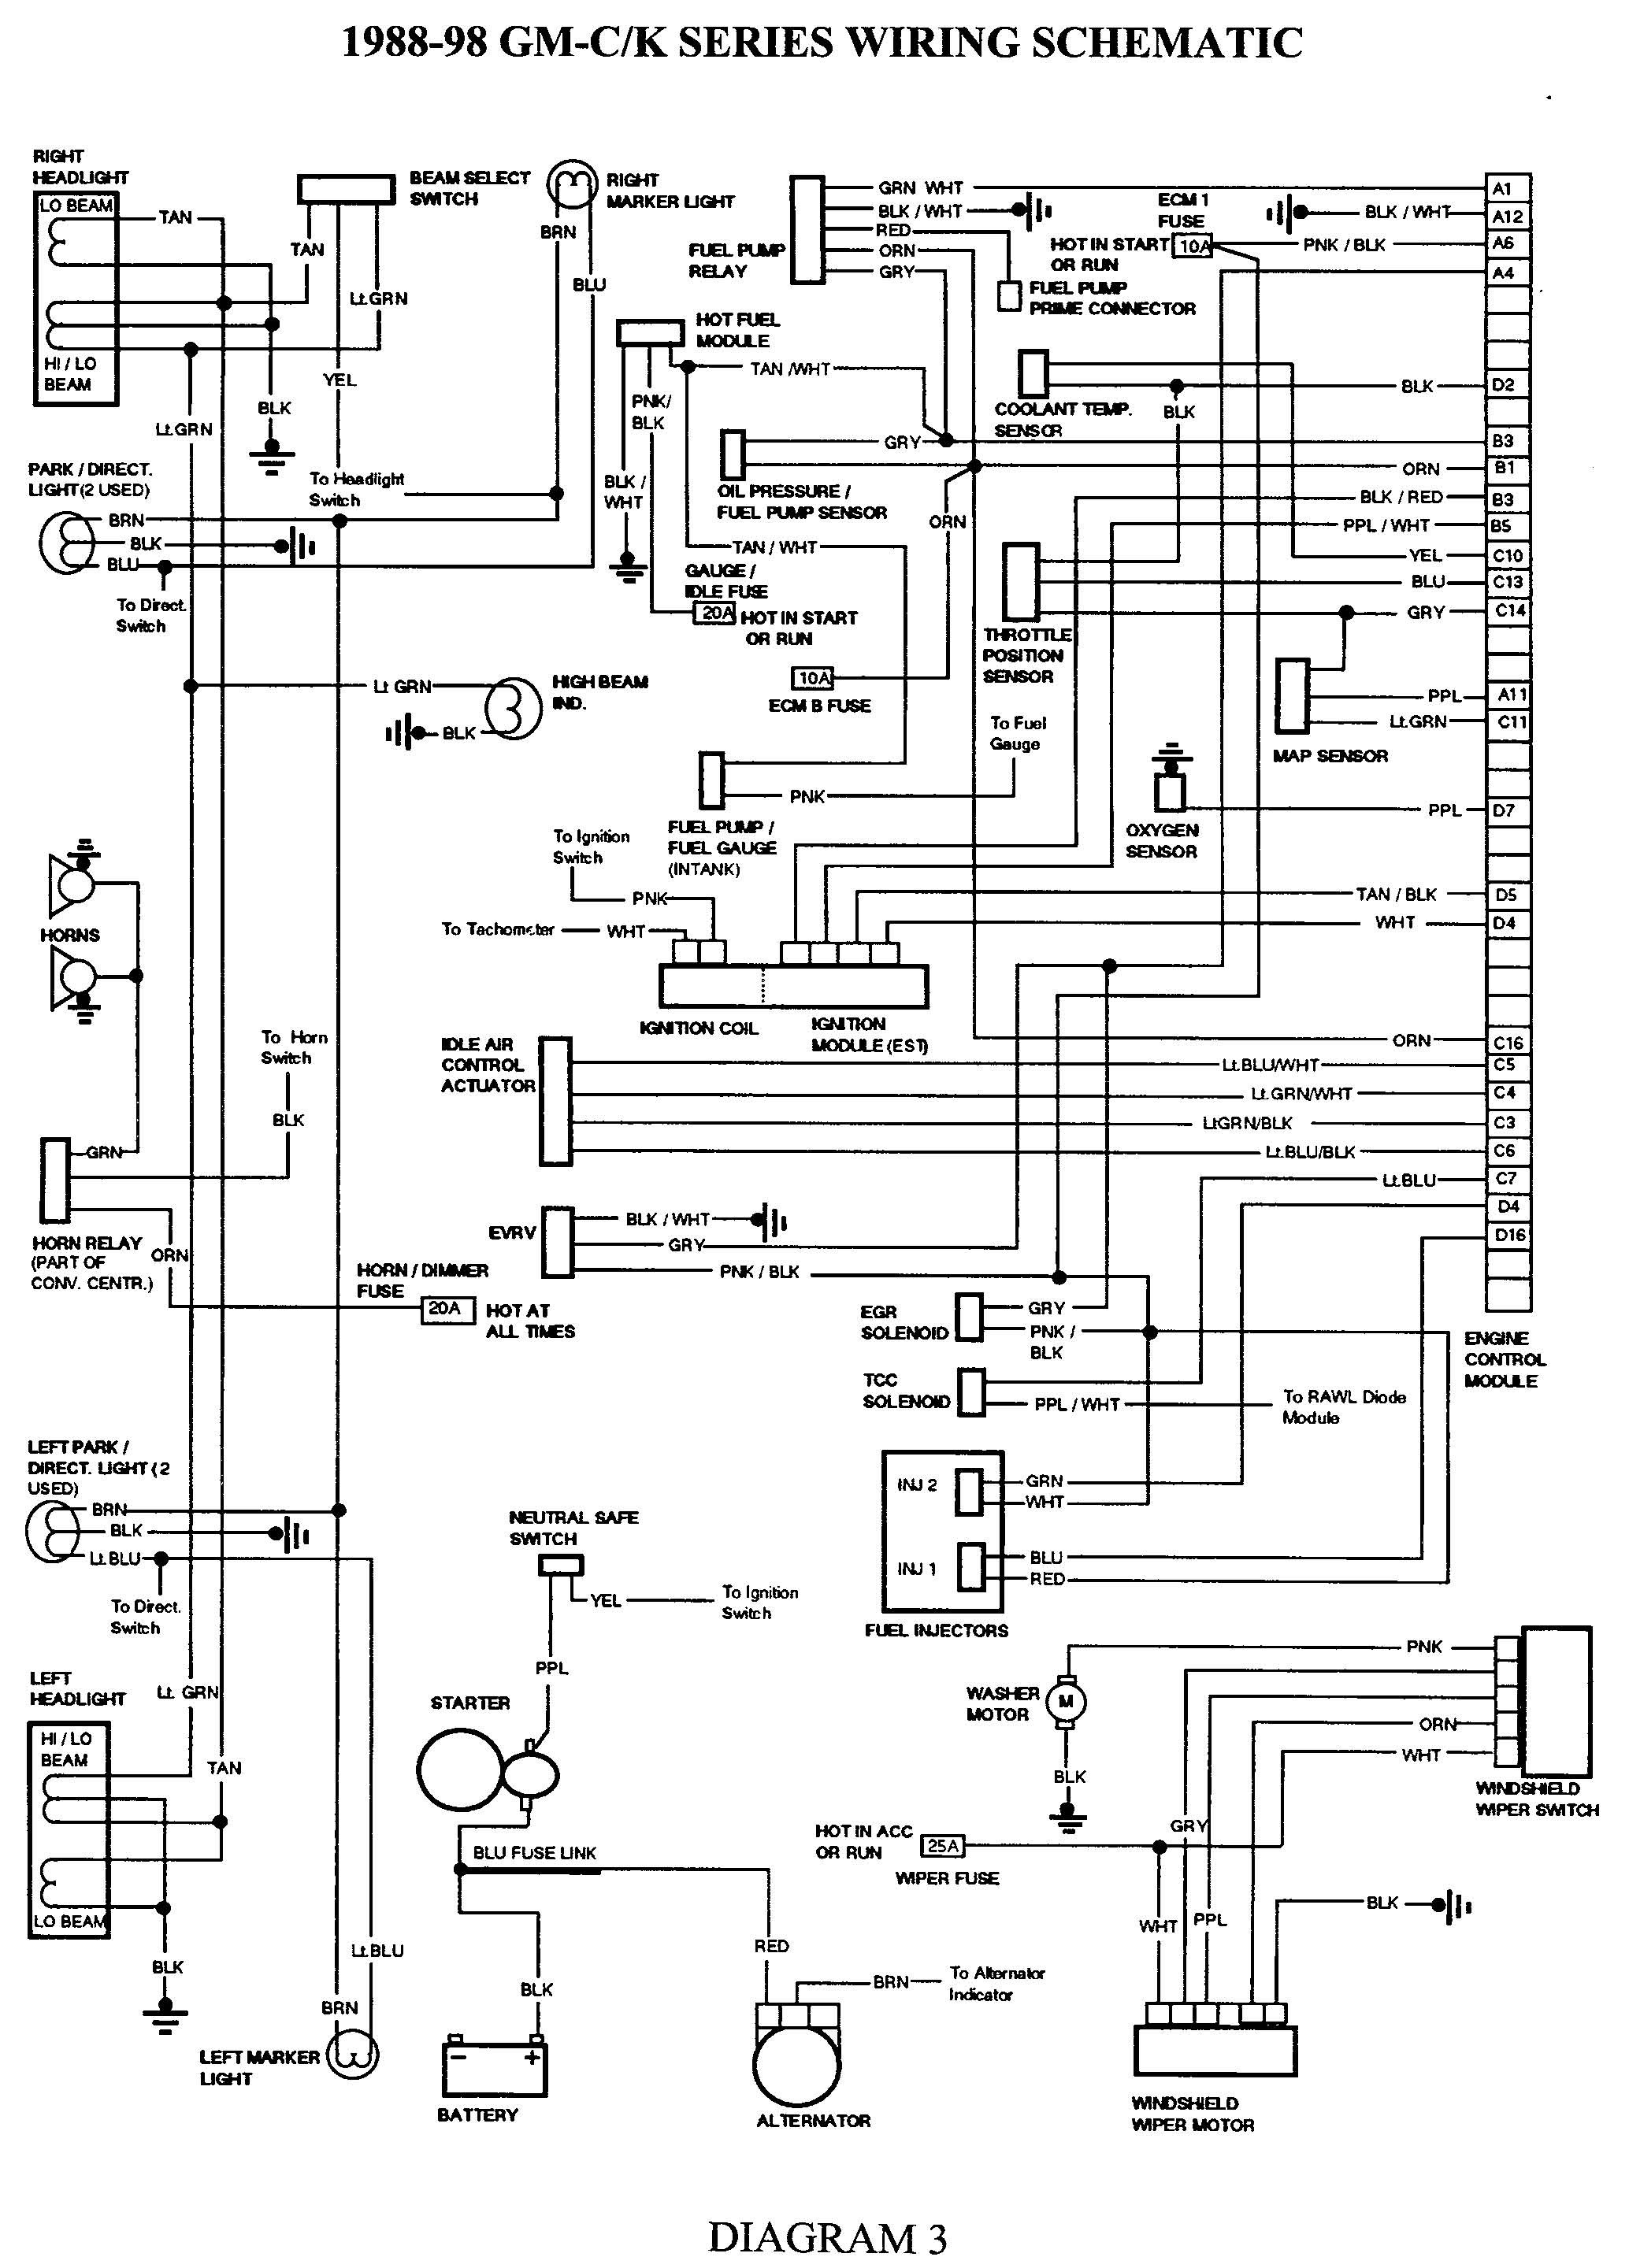 gmc c7500 wiring diagram wiring diagram rh w19 vom winnenthal de 1998 gmc c7500 wiring diagram 2005 gmc c7500 wiring diagram